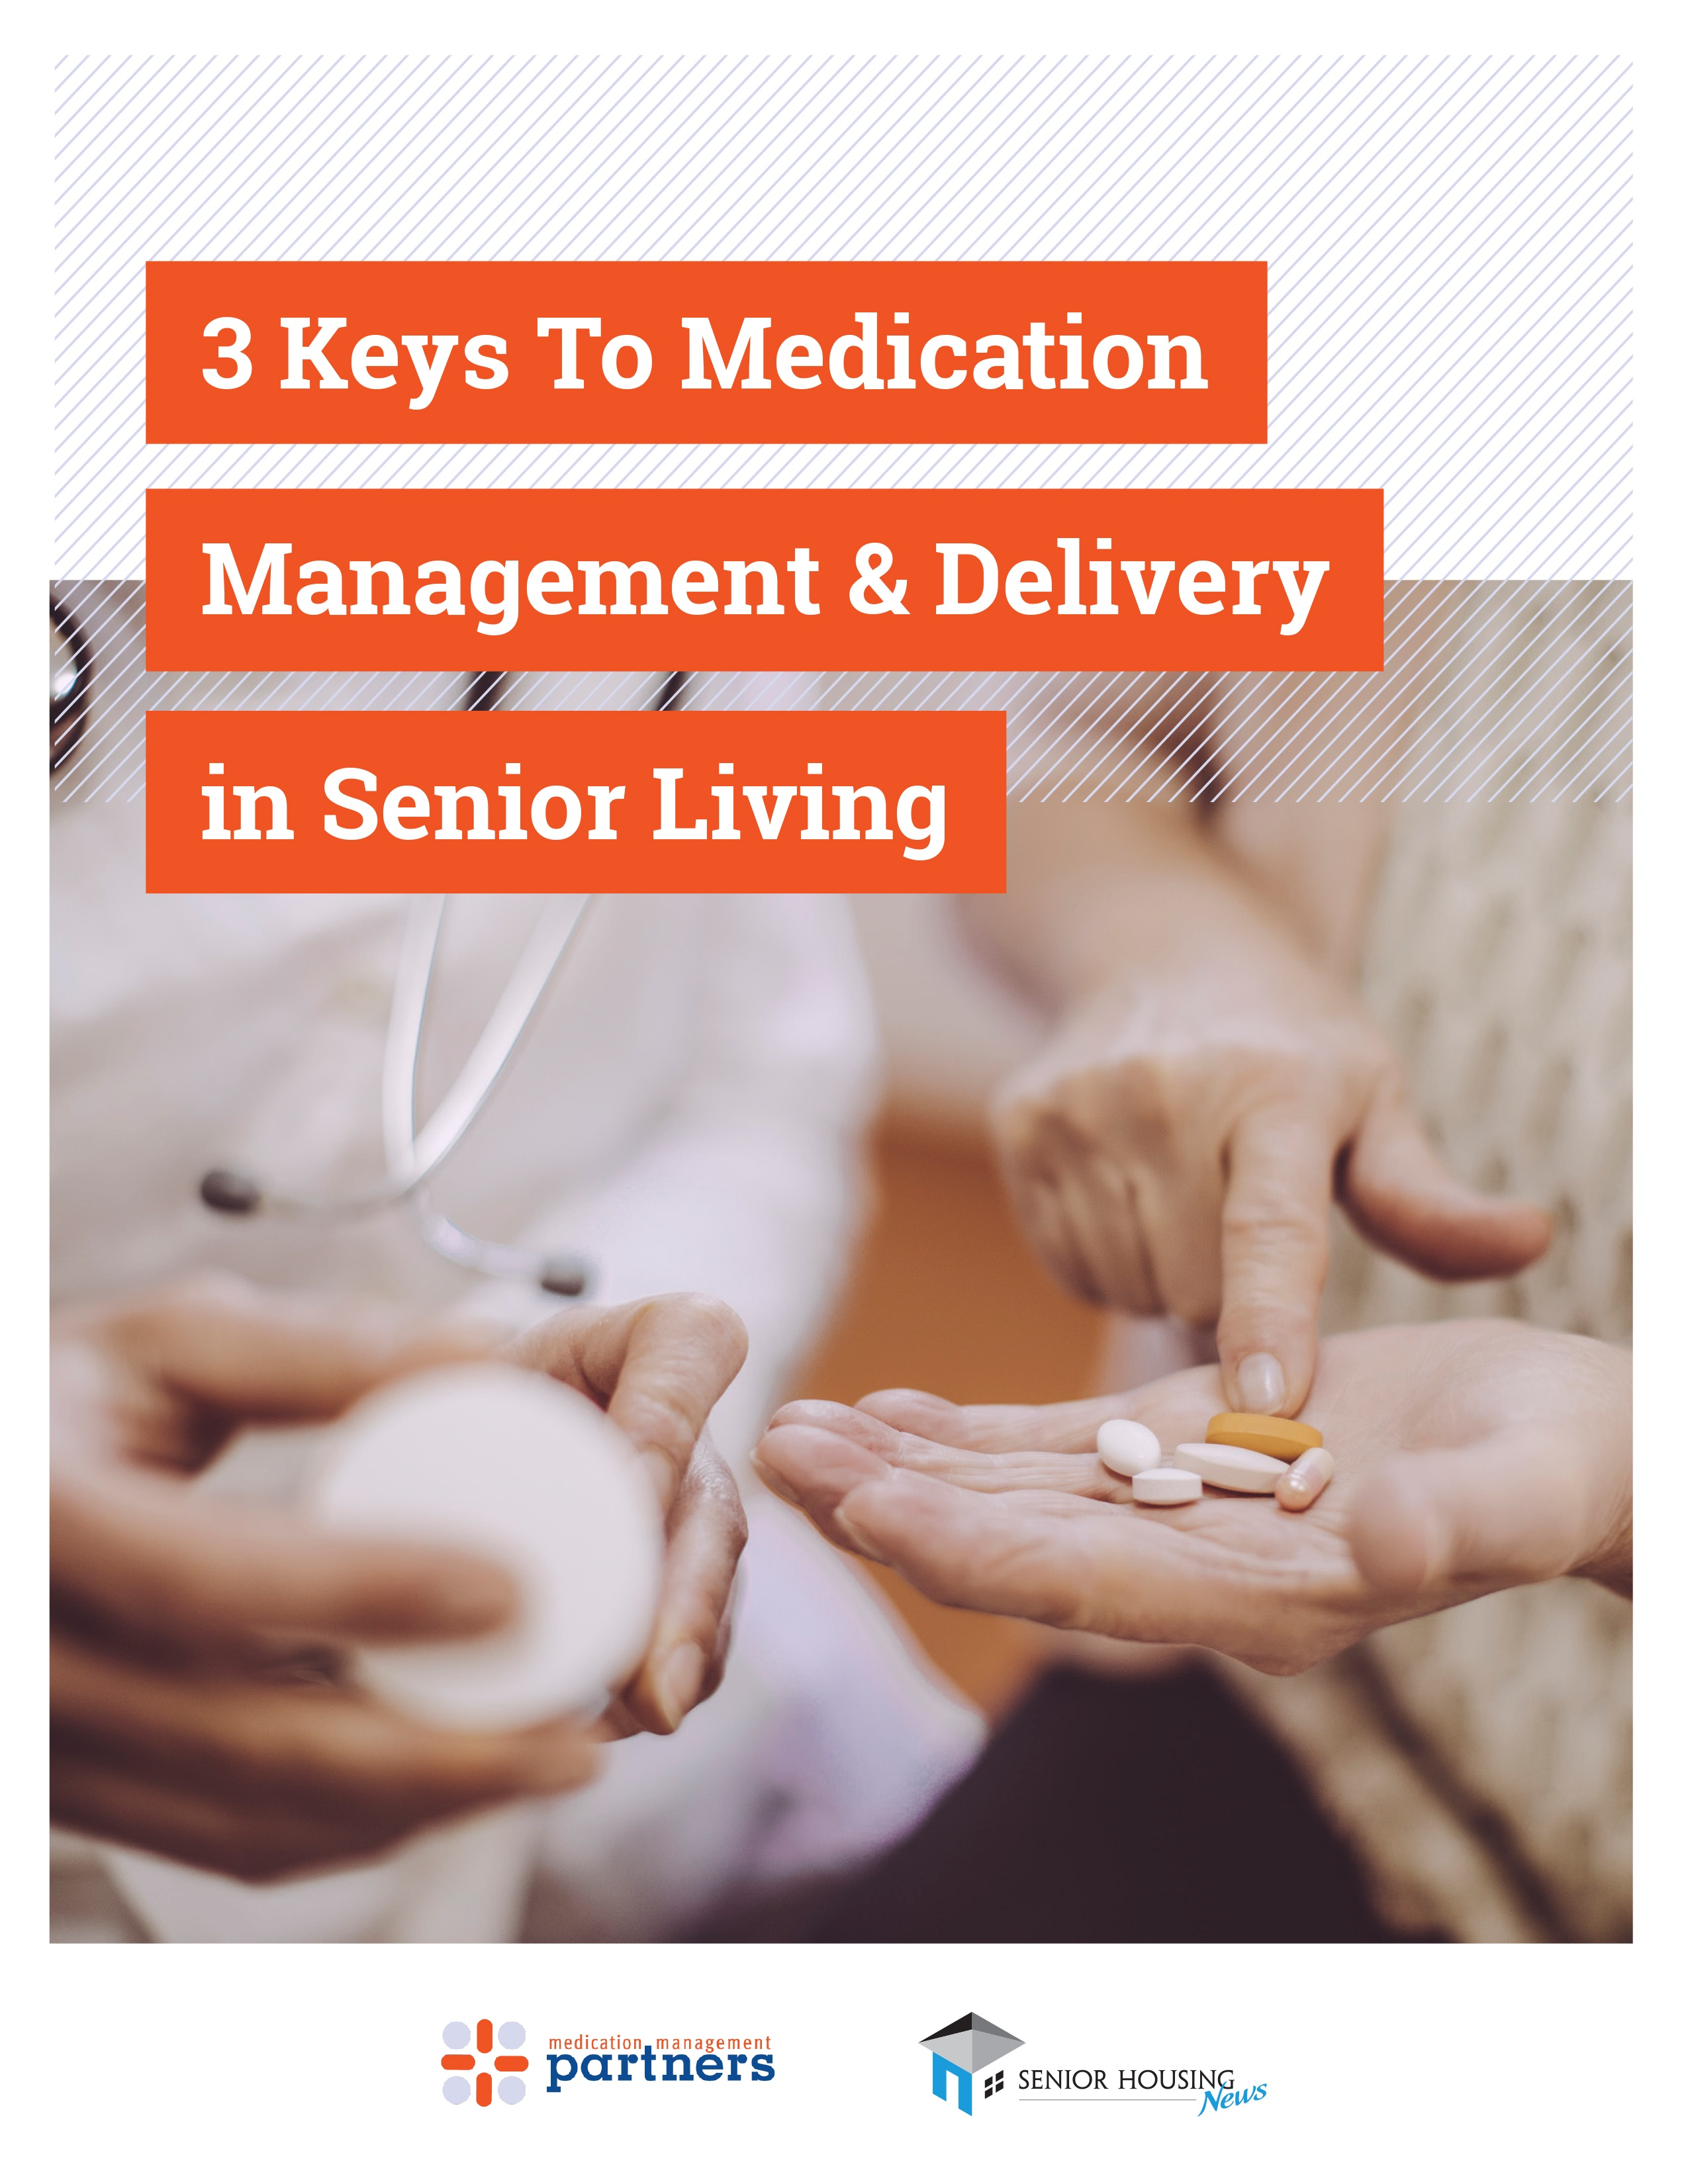 3 Keys To Medication Management and Delivery in Senior Living